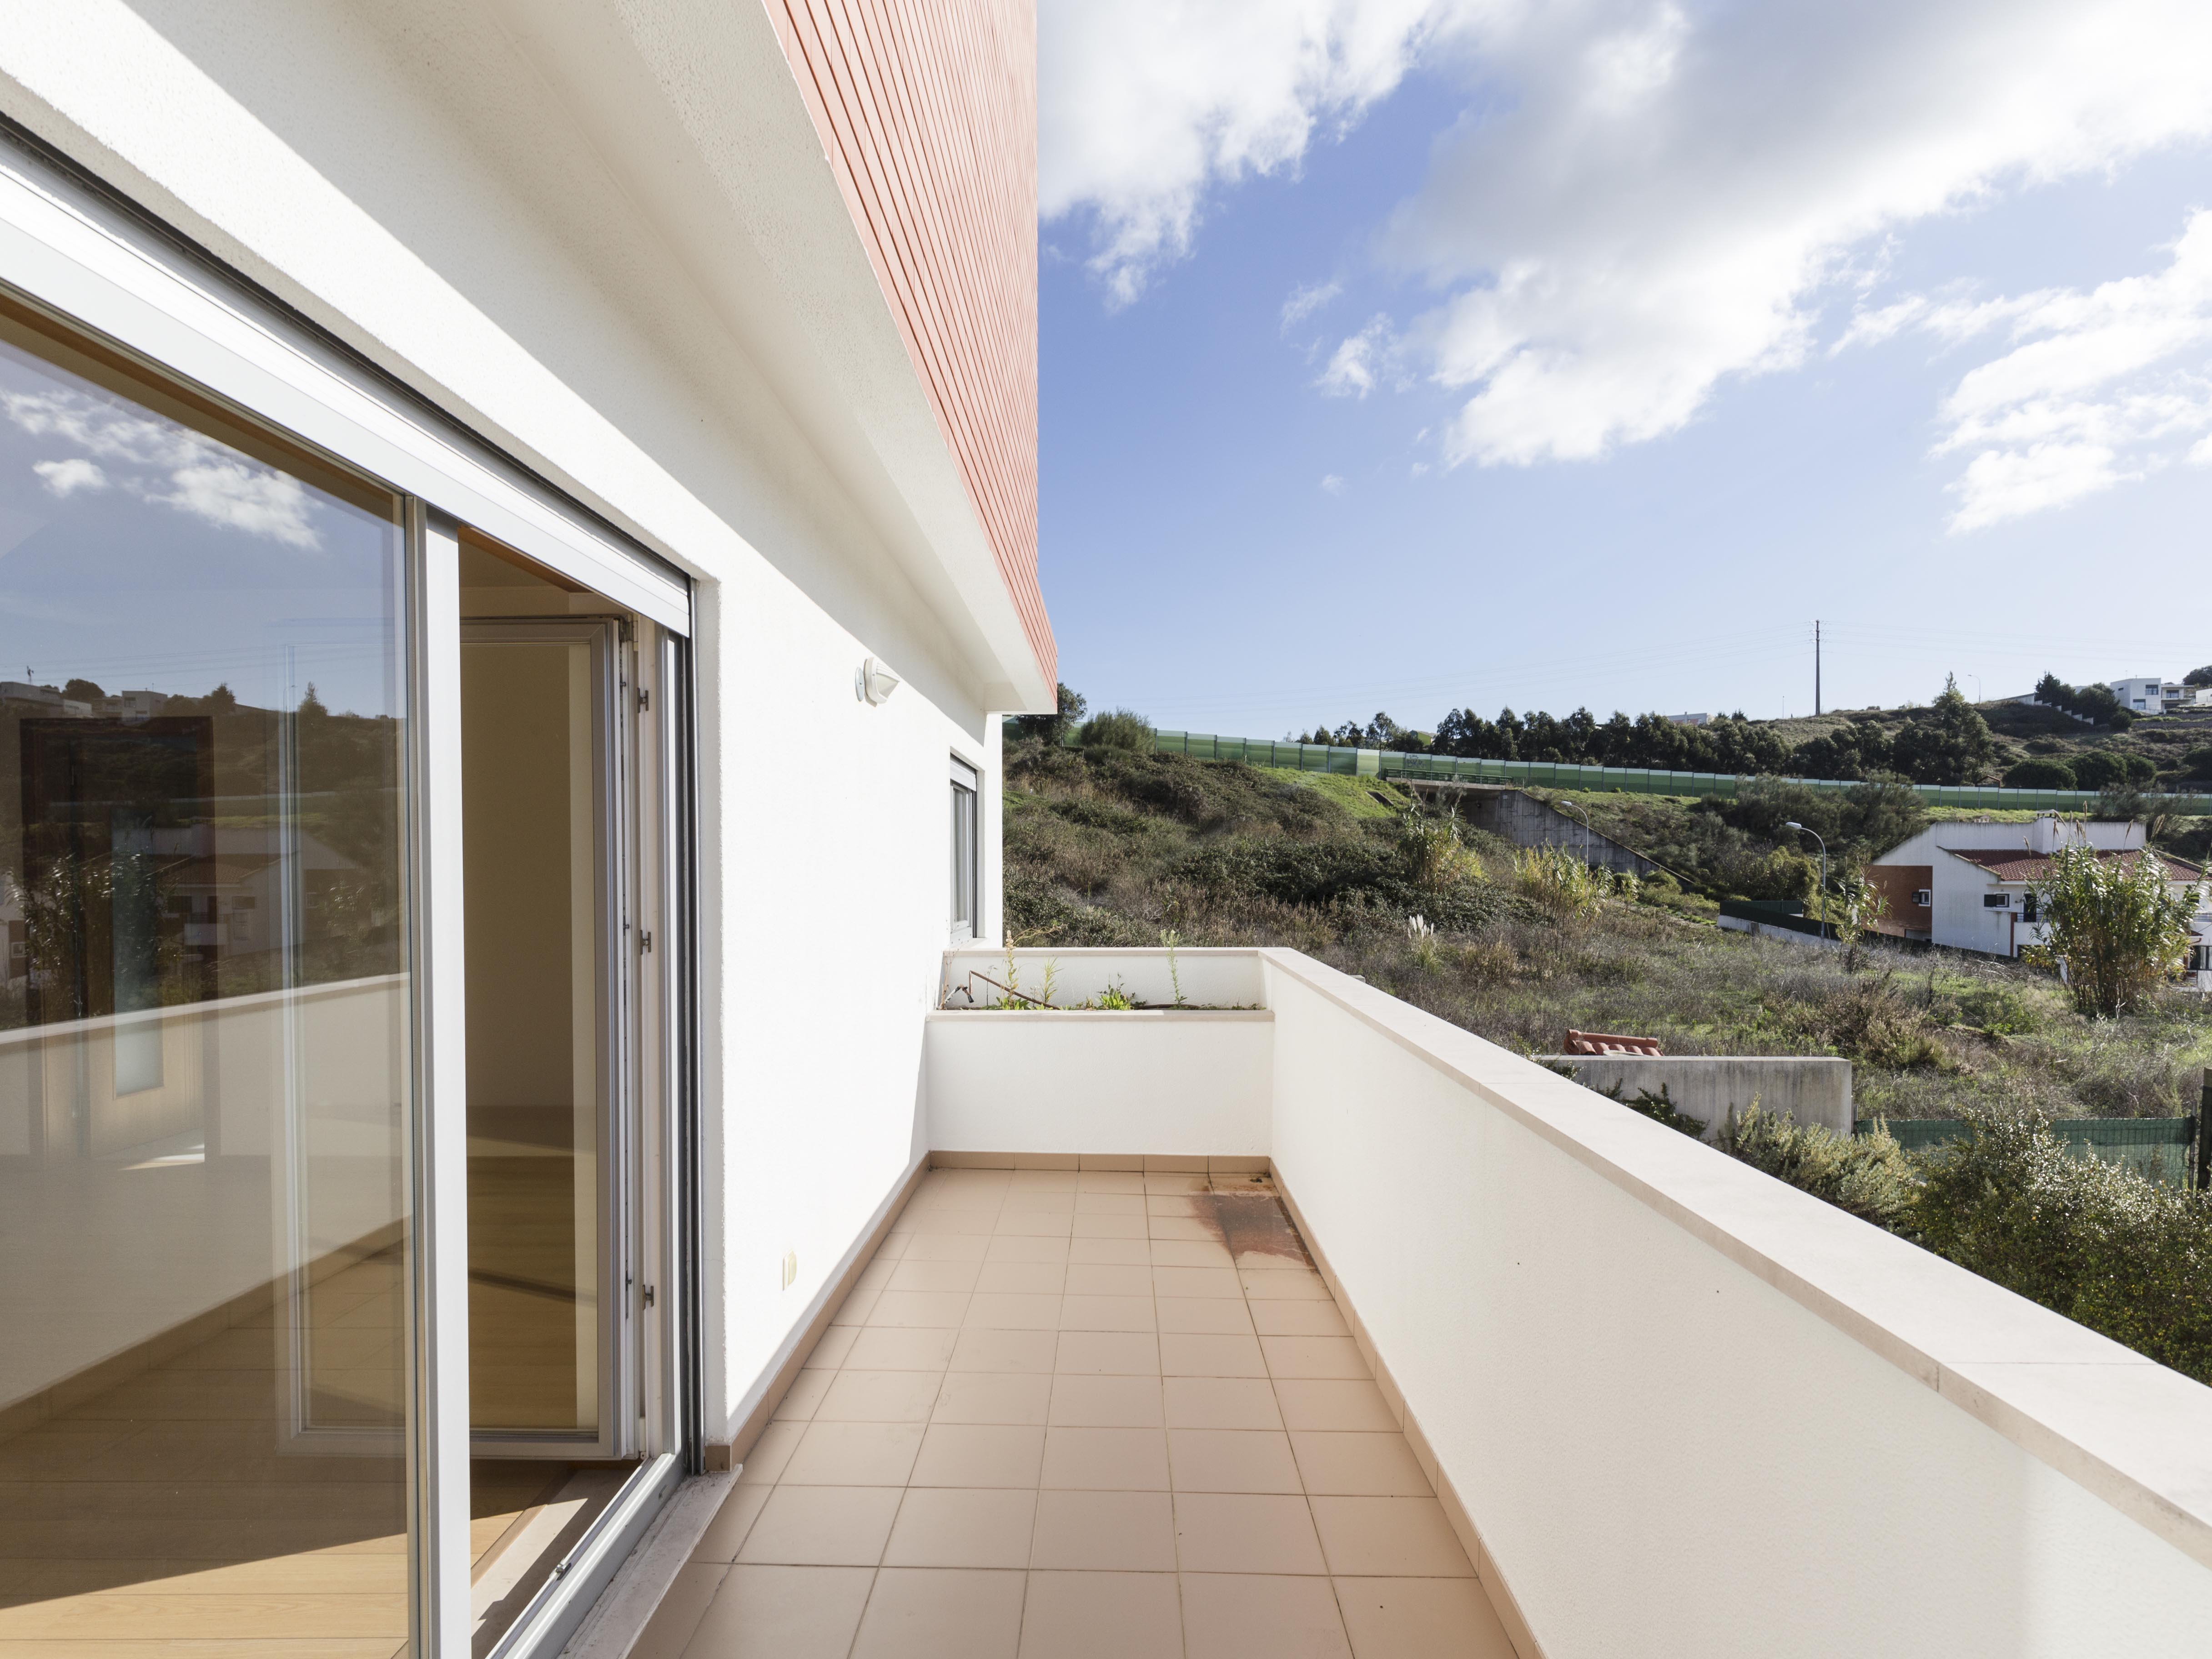 Single Family Home for Sale at Semi-detached house, 4 bedrooms, for Sale Oeiras, Lisboa, Portugal